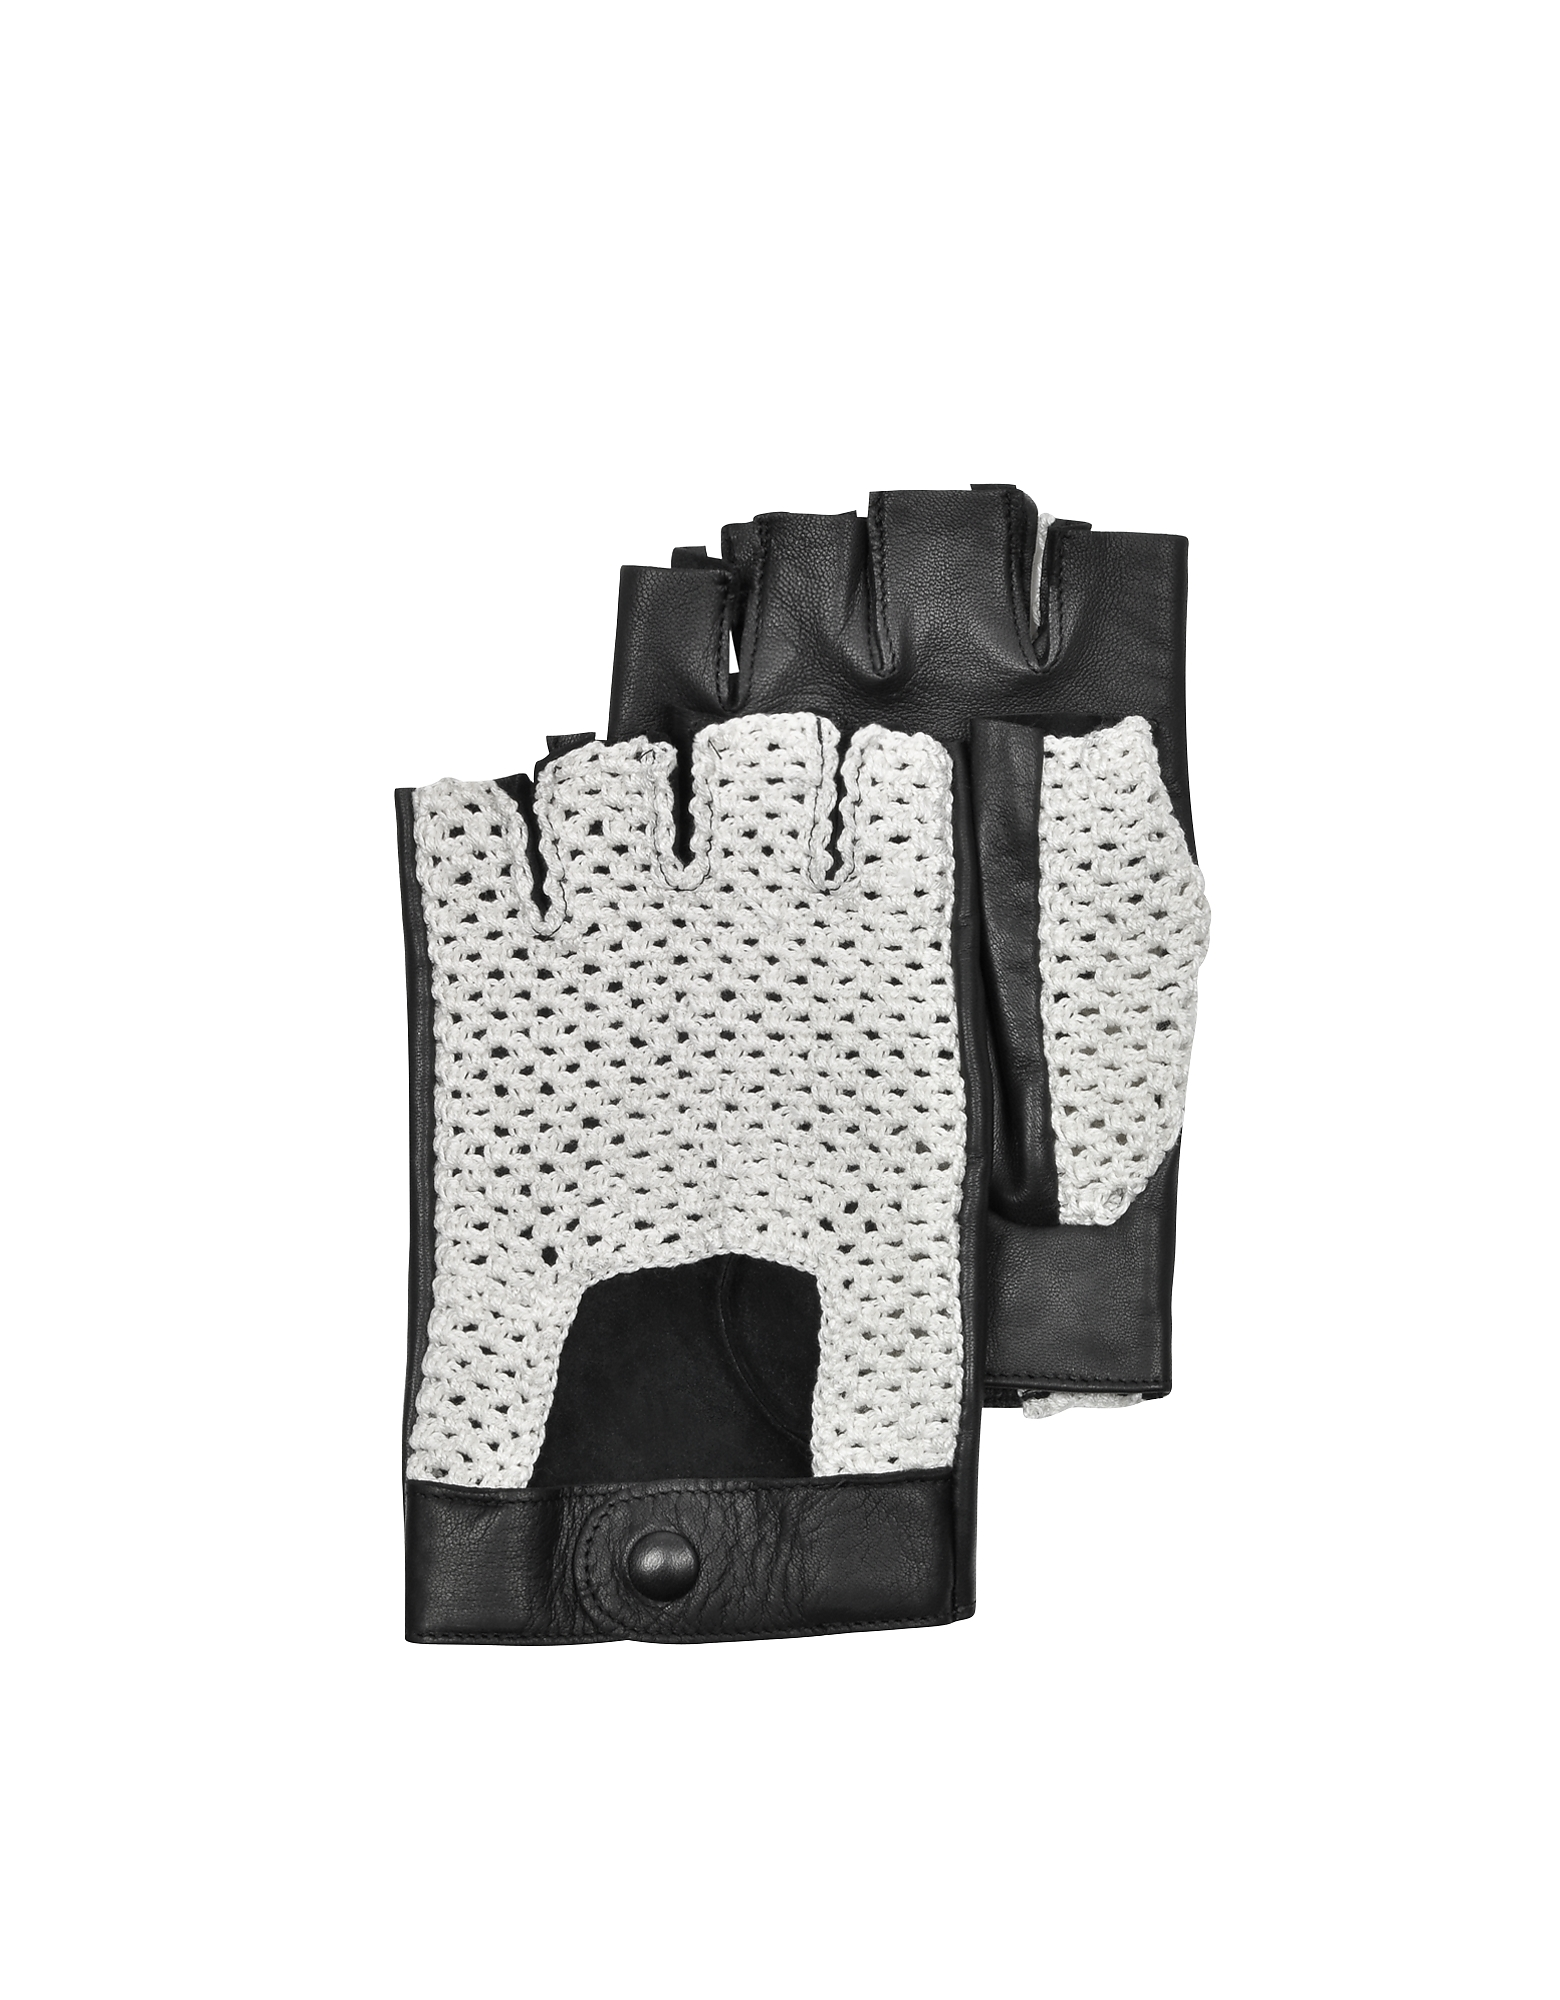 Forzieri Men's Gloves, Black Leather and Cotton Men's Driving Gloves